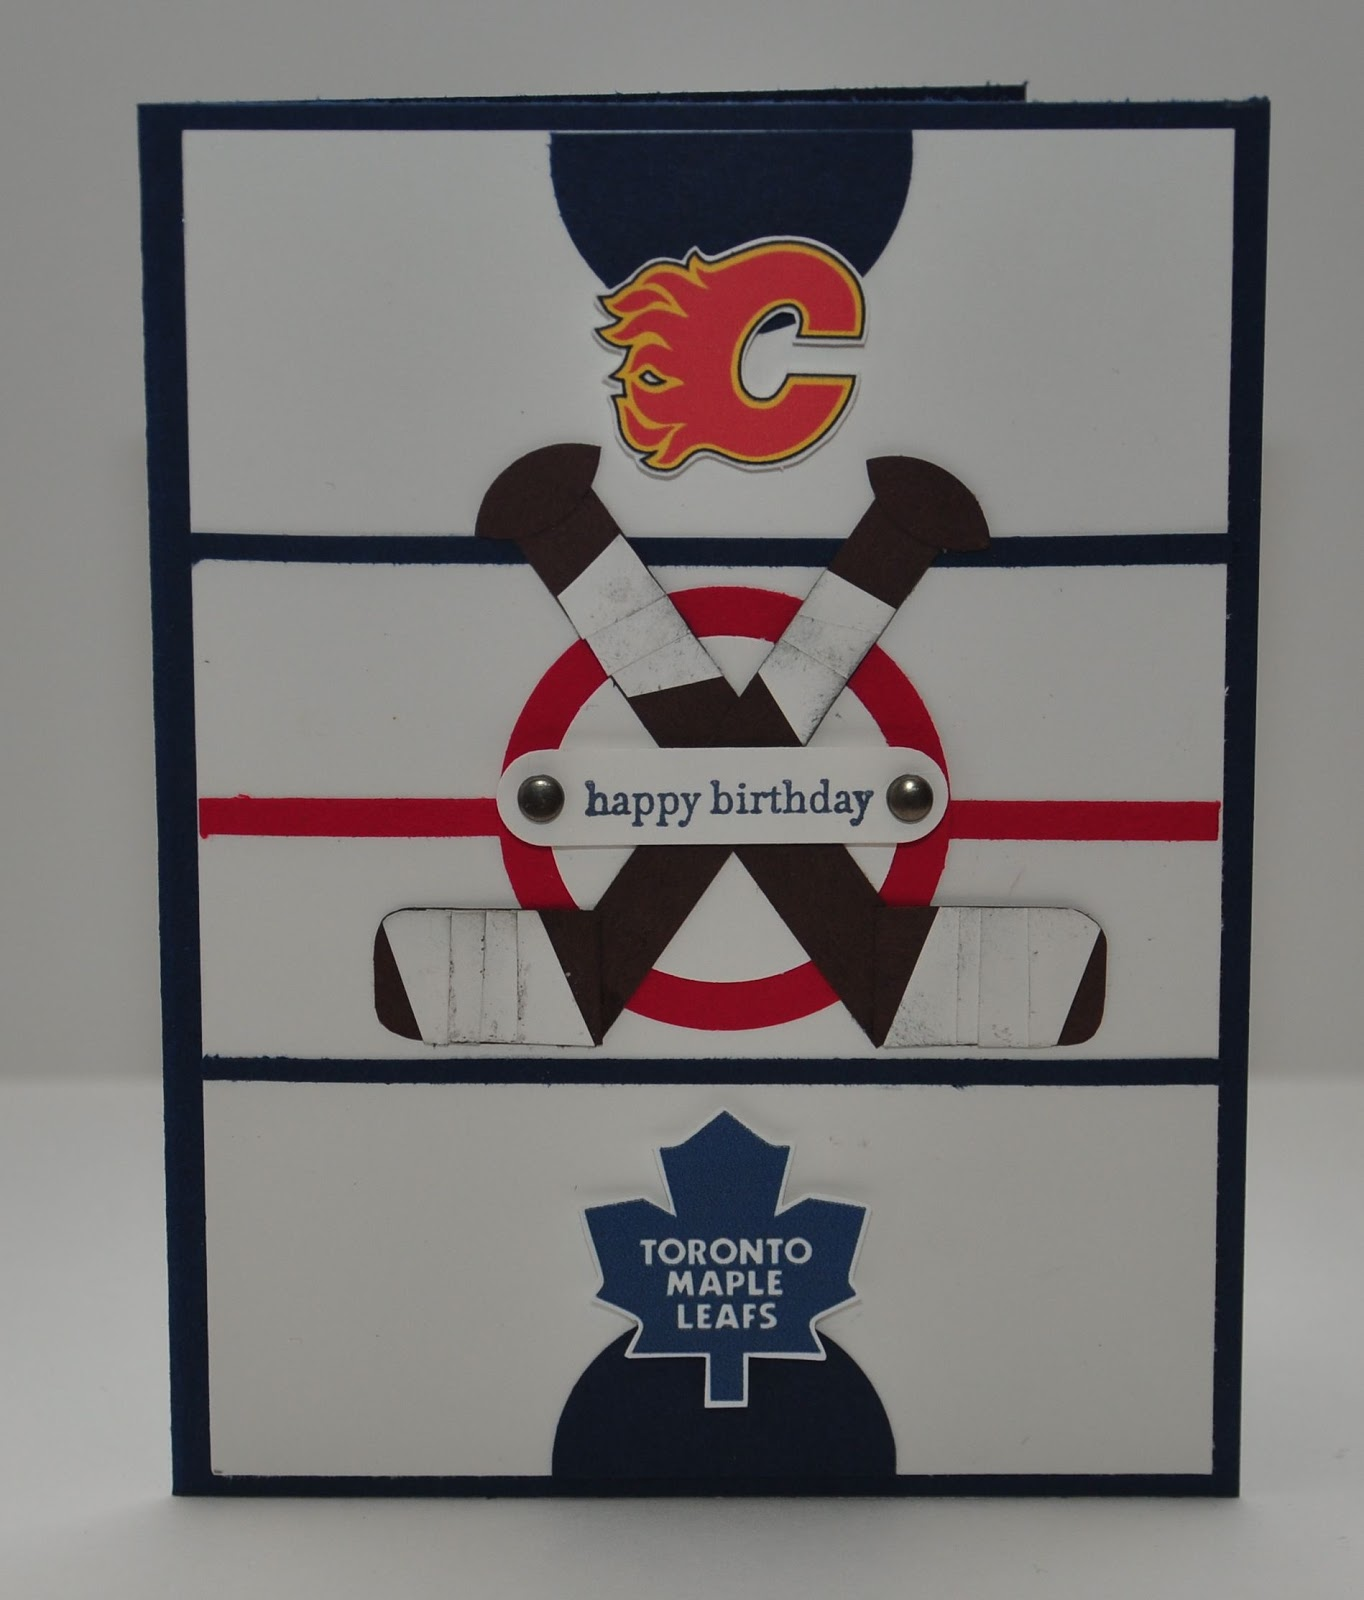 Snippets By Design: Happy Birthday To A Hockey Fan